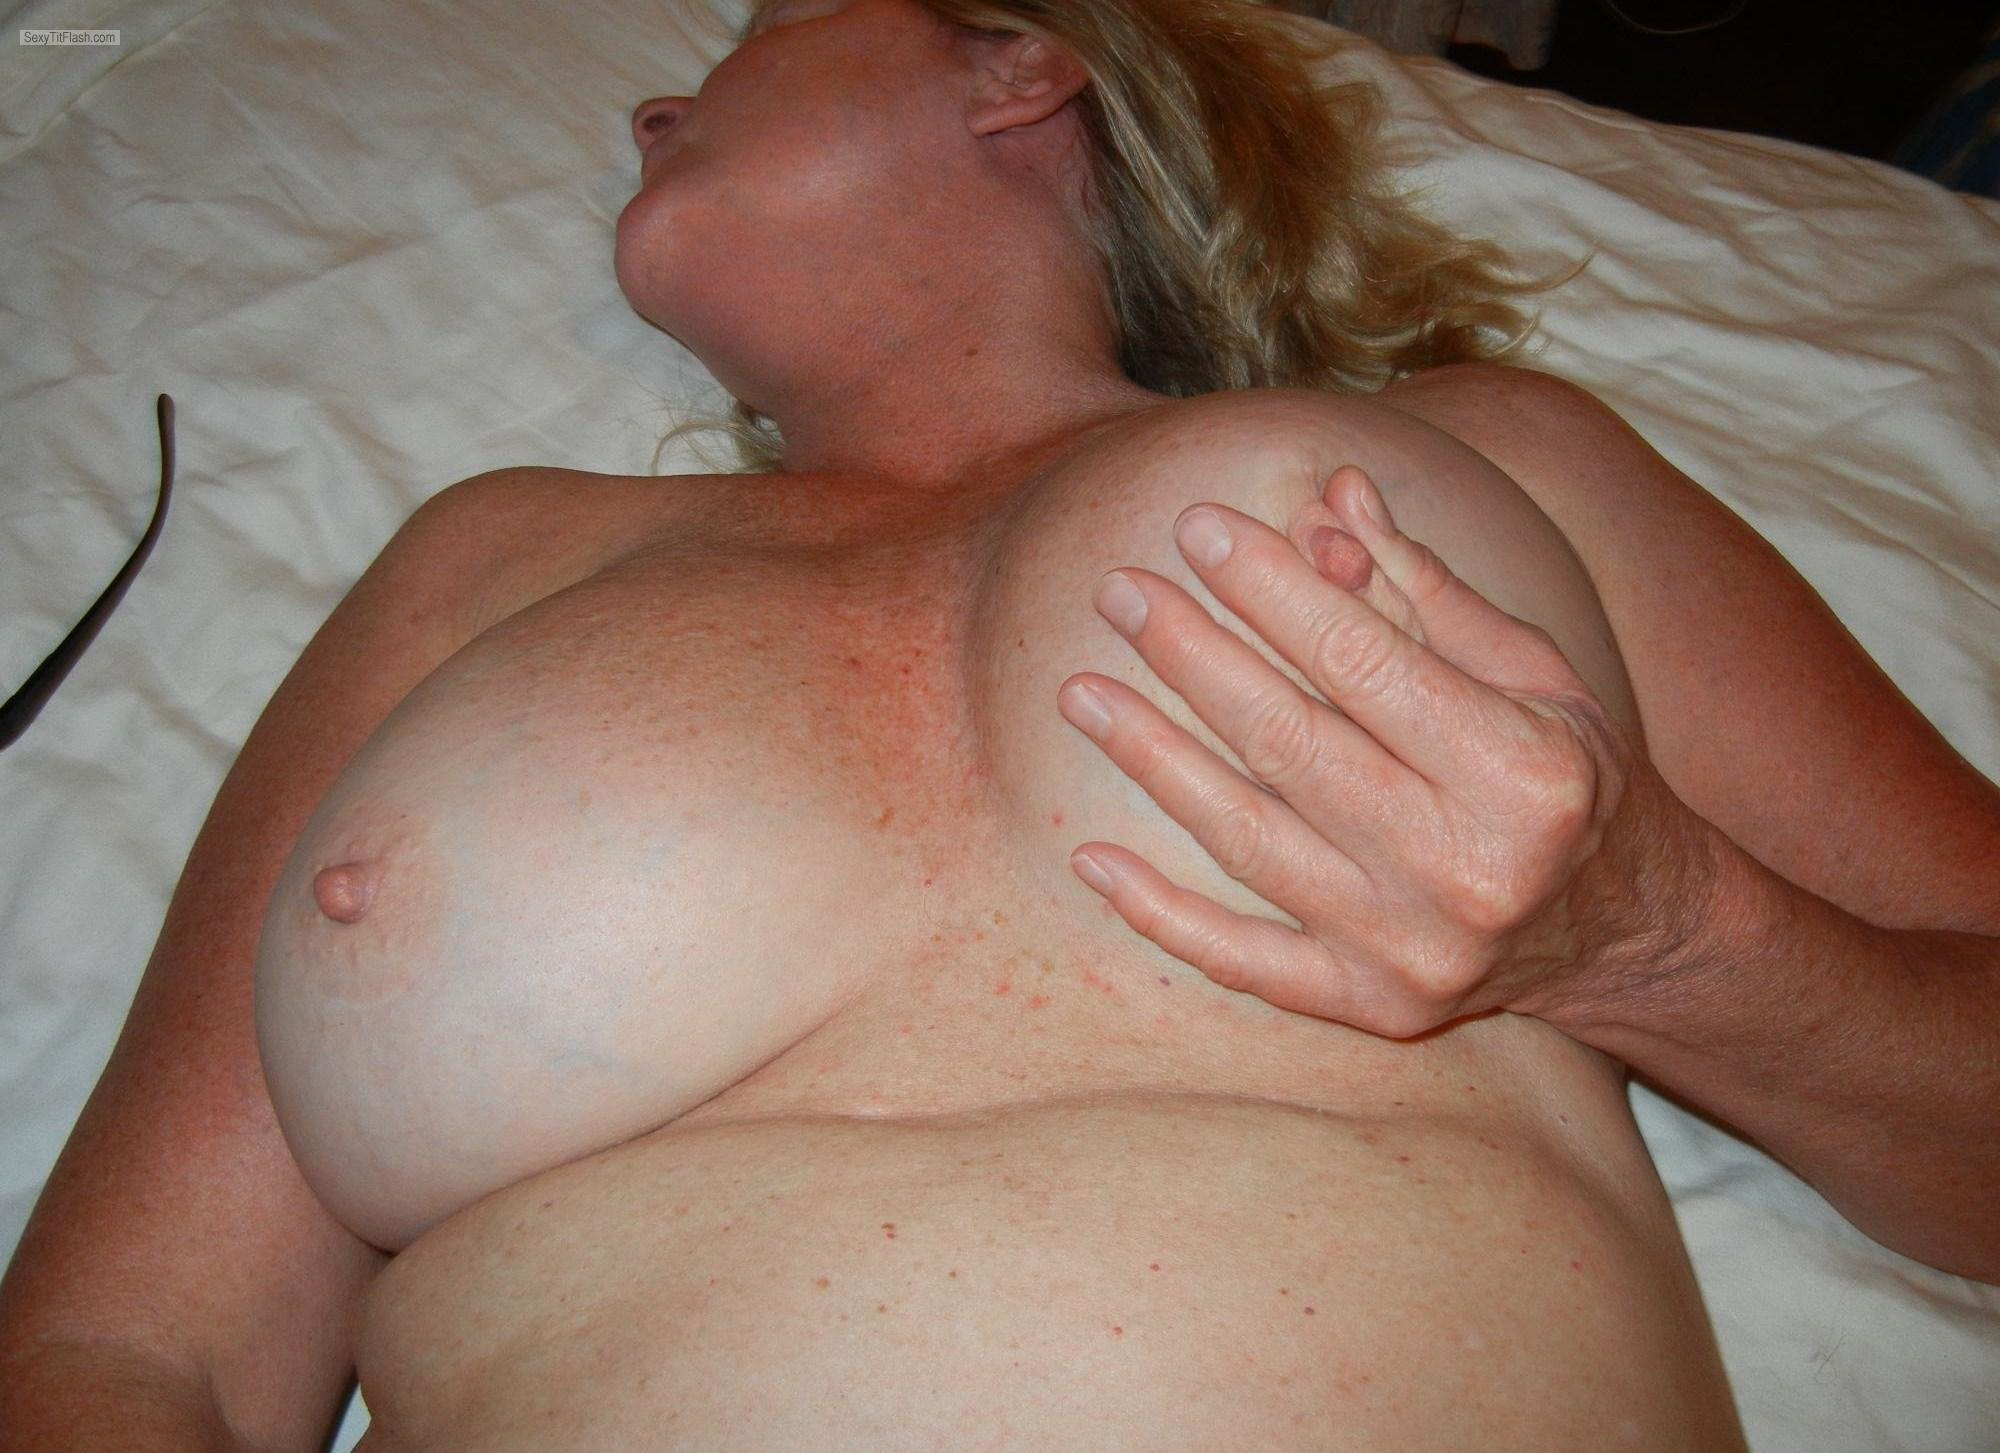 Tit Flash: Ex-Girlfriend's Big Tits - CLD from United States